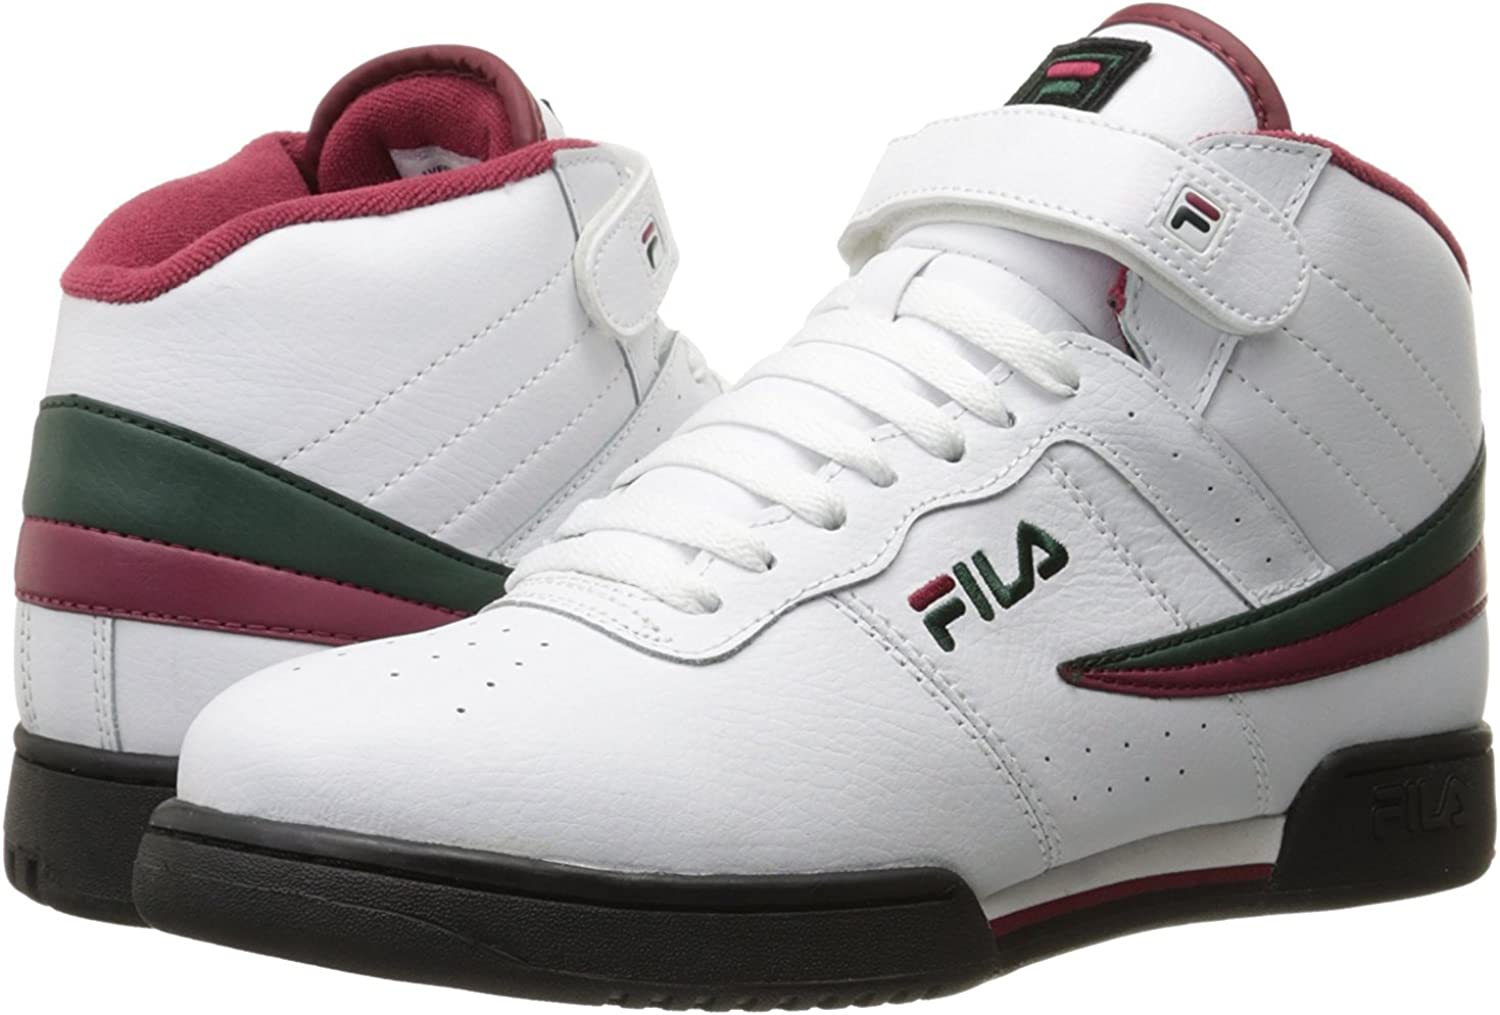 Fila Men's F-13V Leather Synthetic shoes White   Sycamore   Biking Red 7